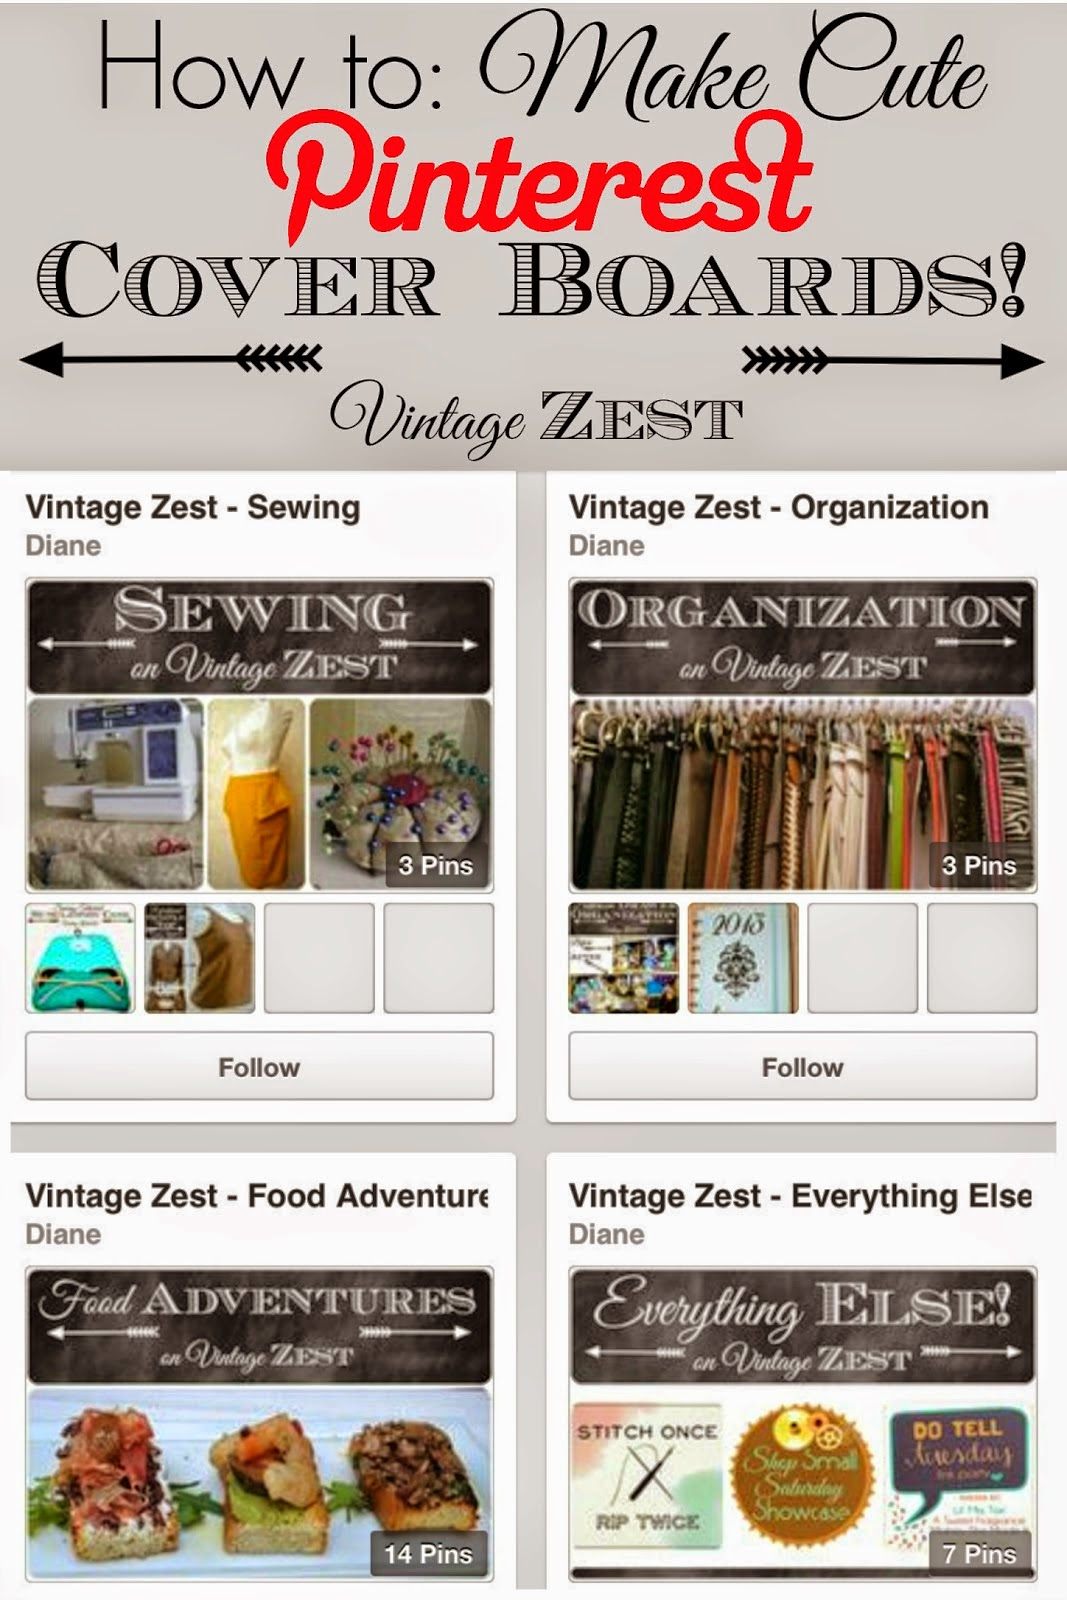 How to make Pinterest cover boards